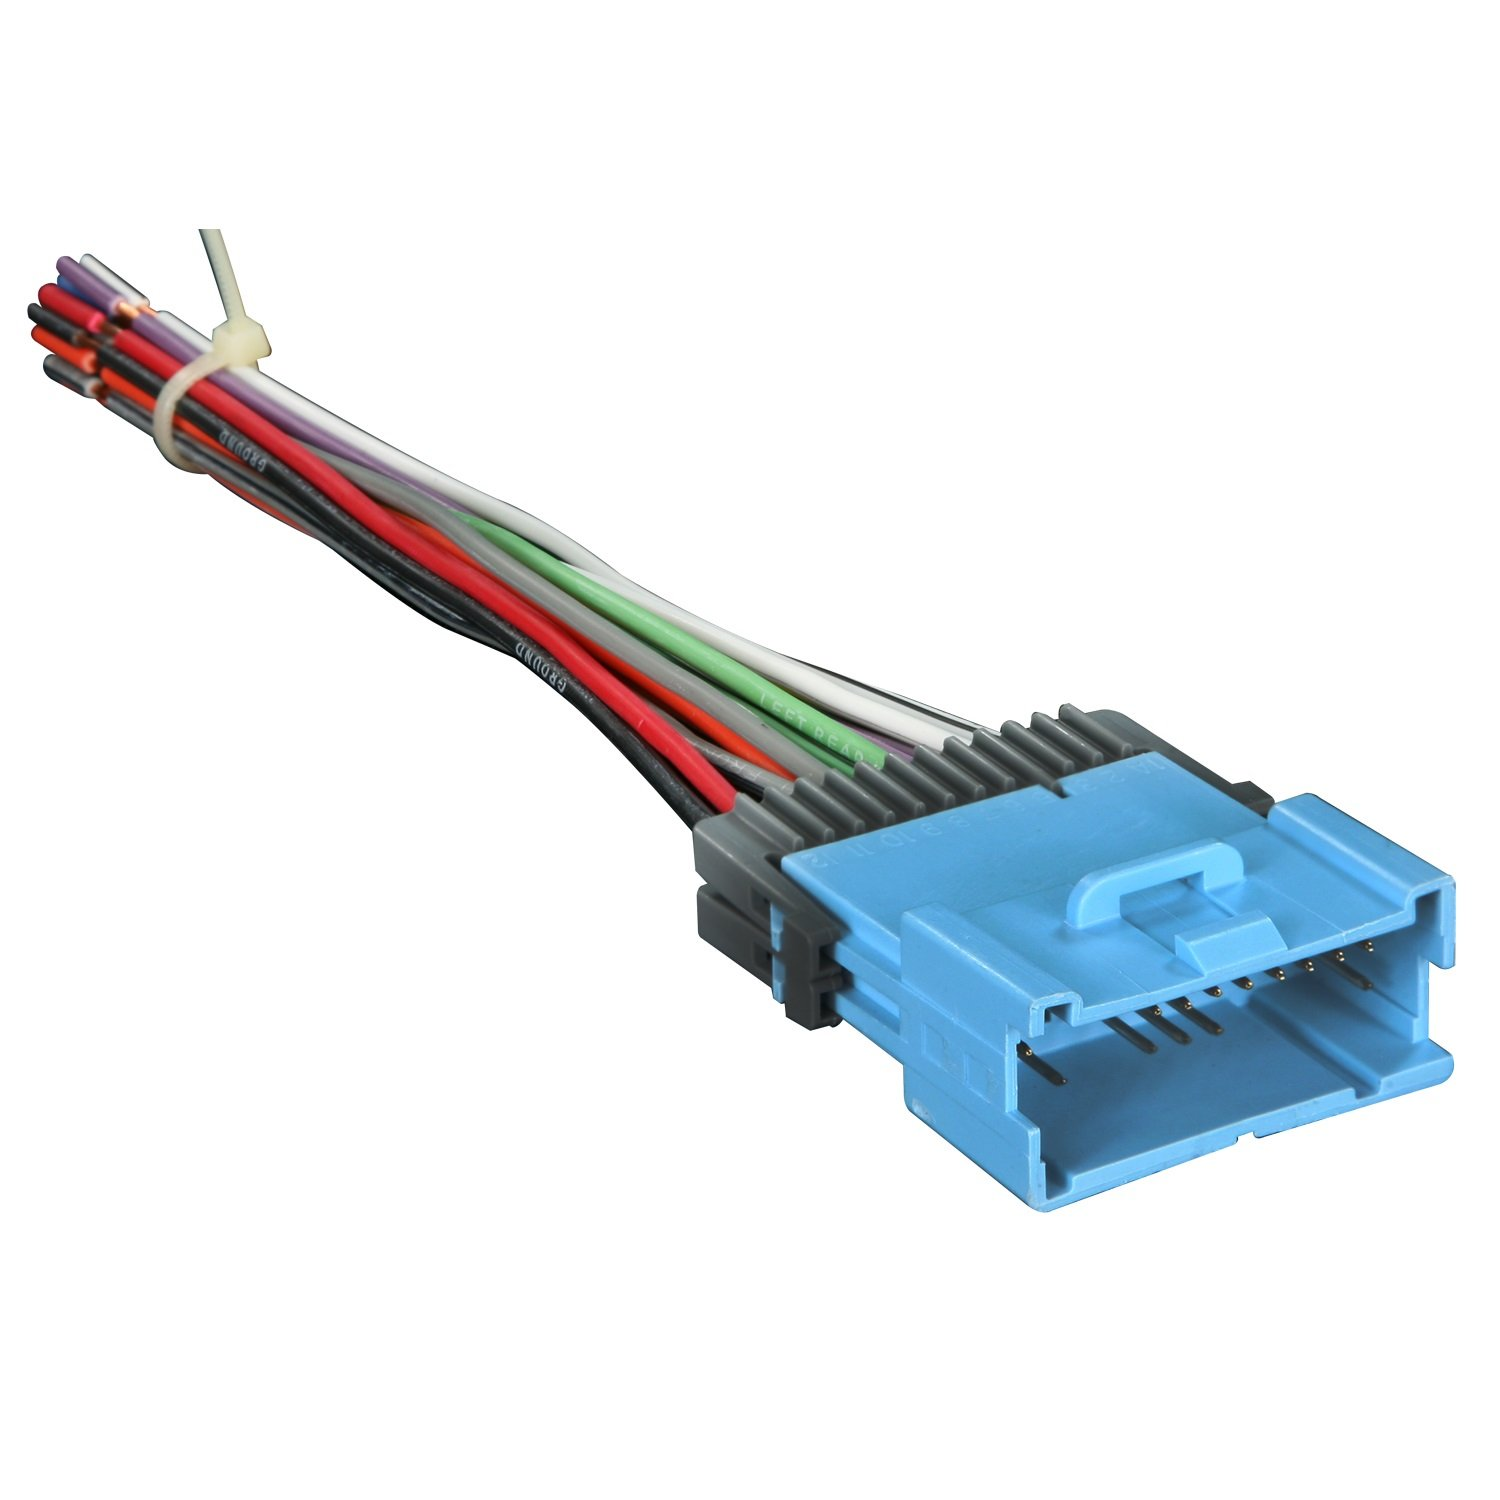 61ruWw 2aJL._SL1500_ amazon com metra 70 2102 radio wiring harness for gm 04 05 car GM Wiring Color Codes at bayanpartner.co